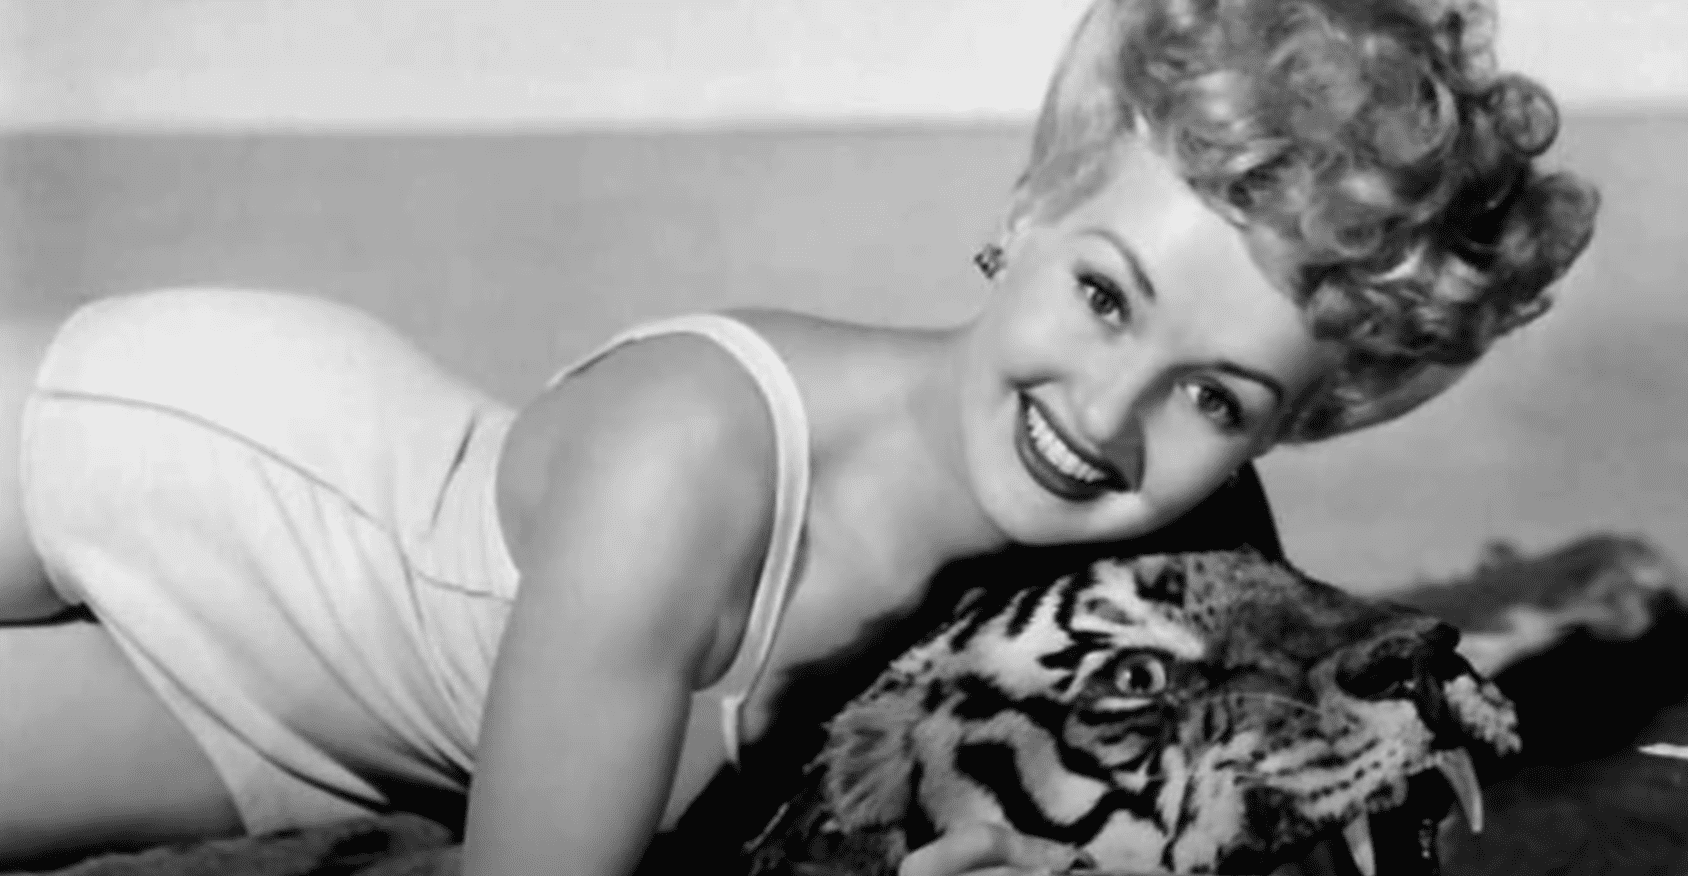 Image Source: Youtube/Mo10ta| Betty posing in her bathing suit